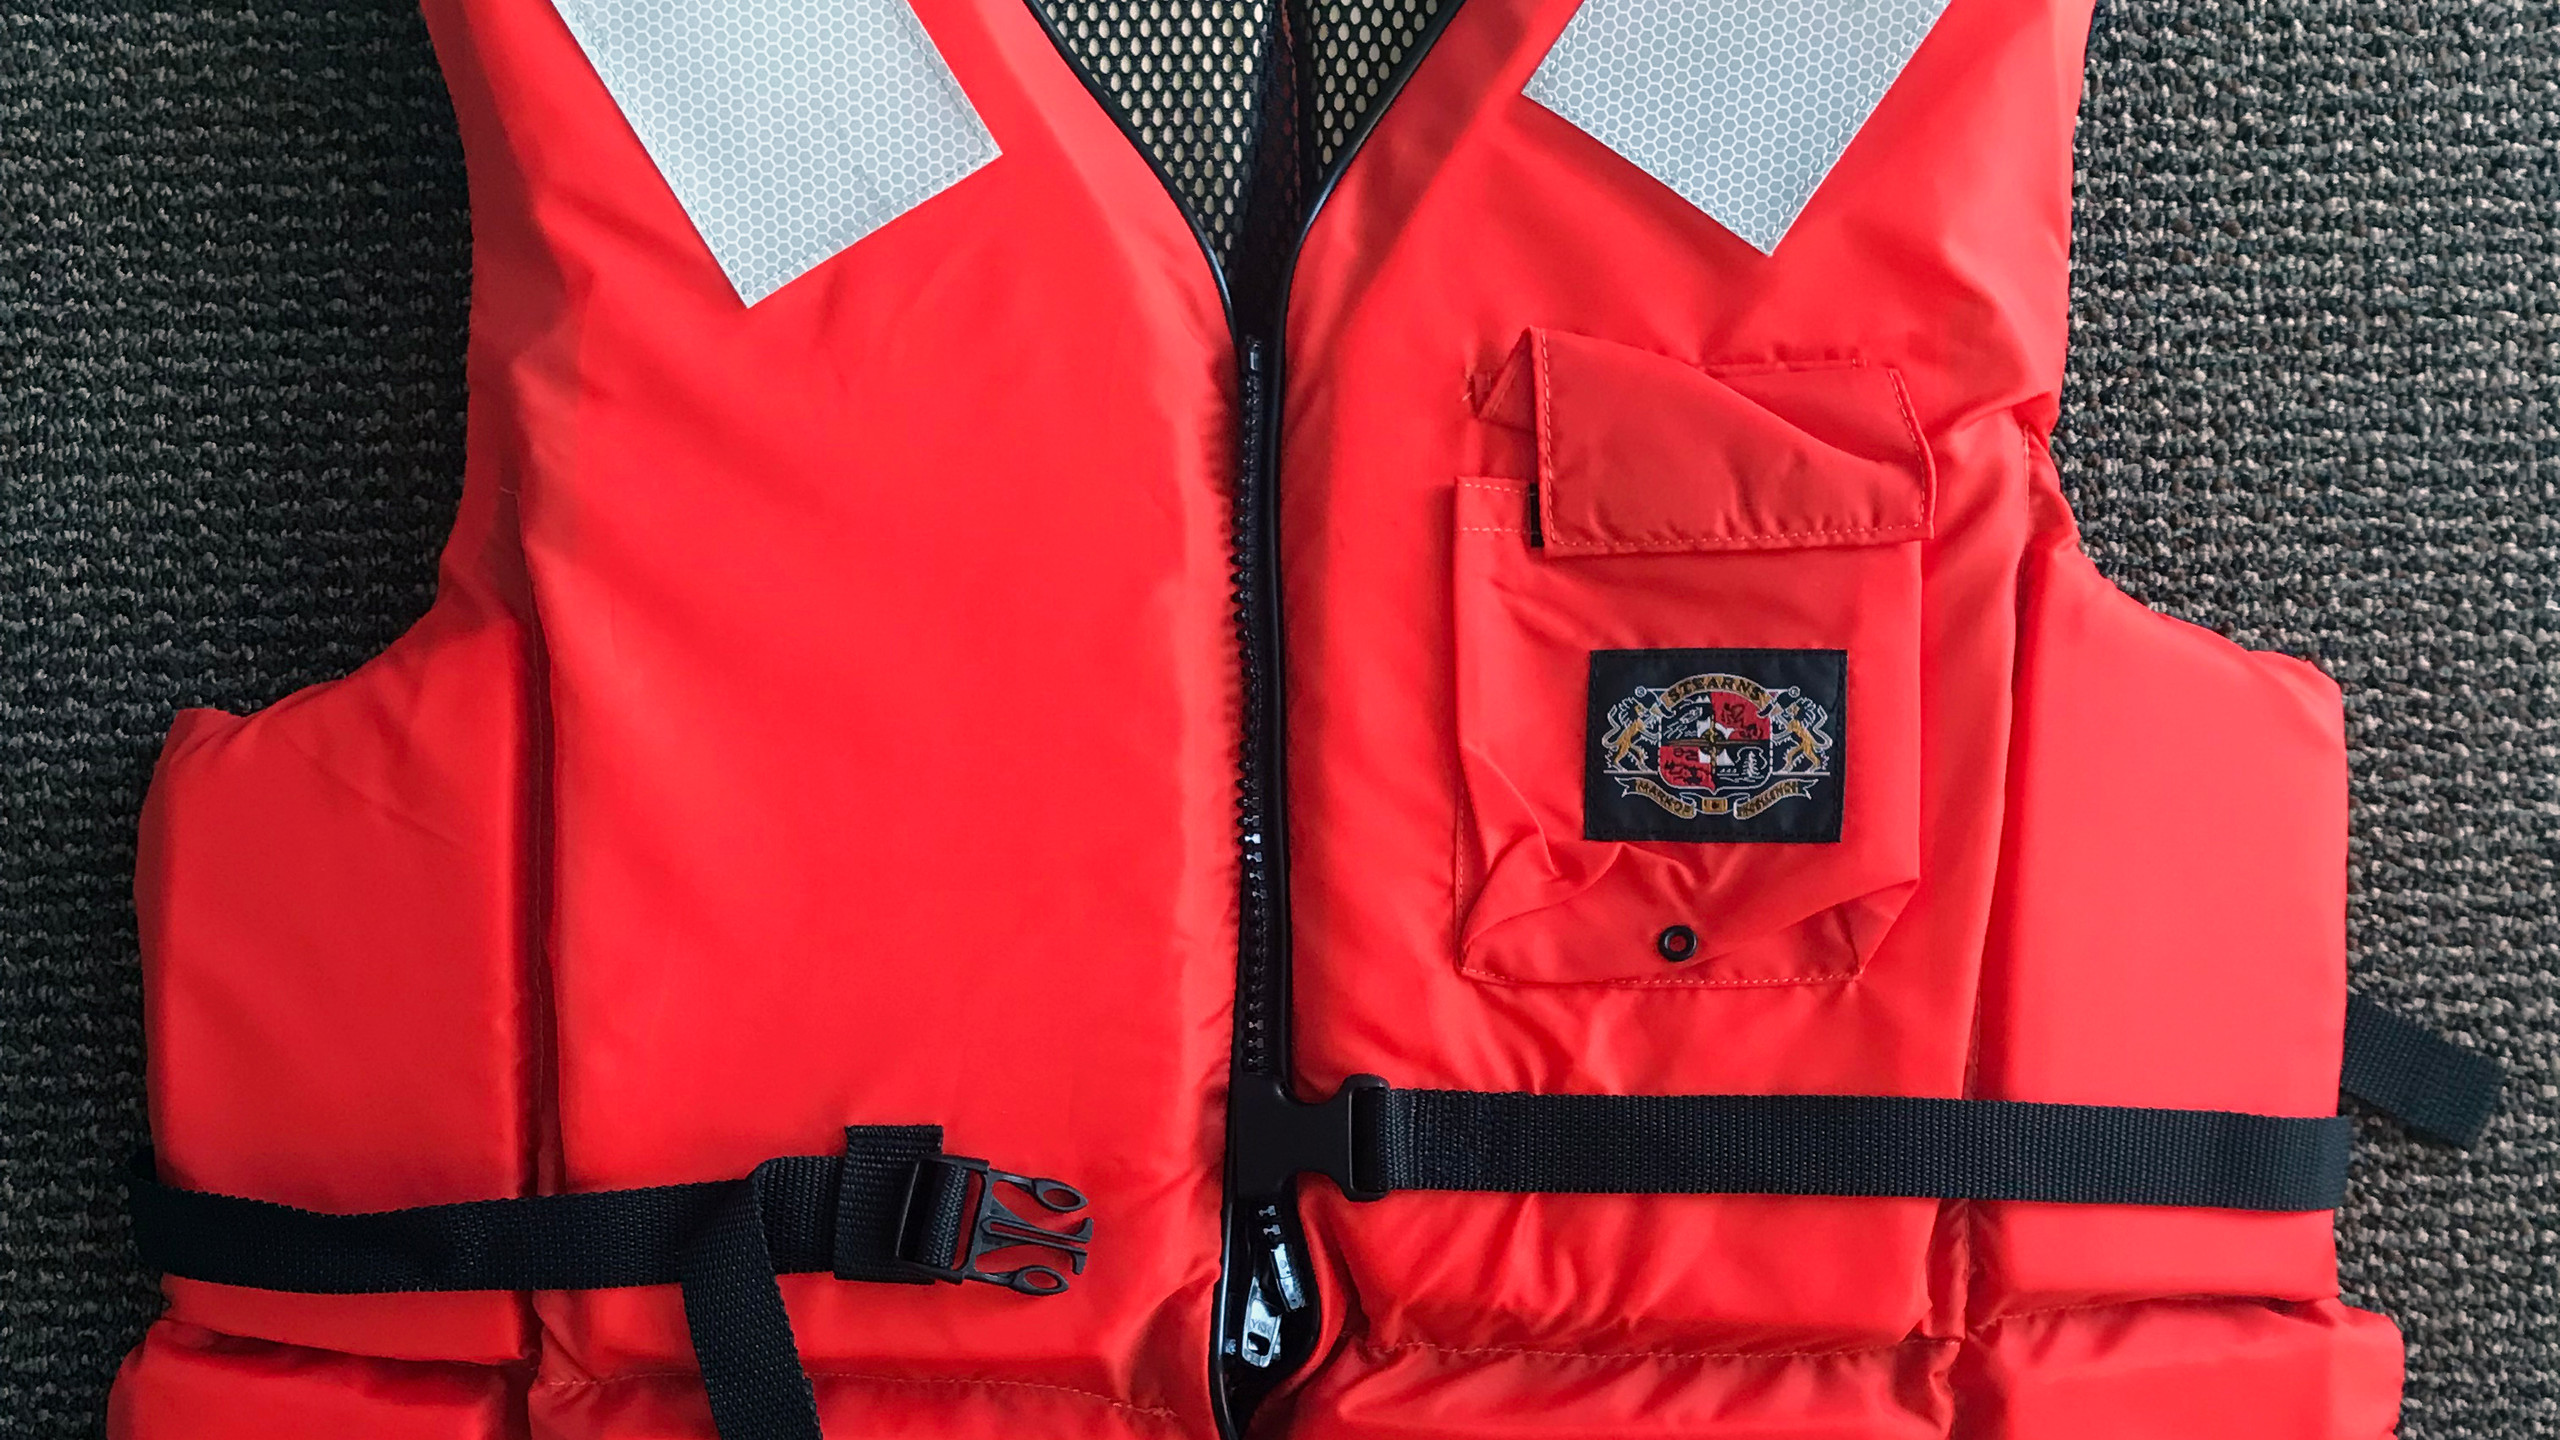 One Fisherman's PFD